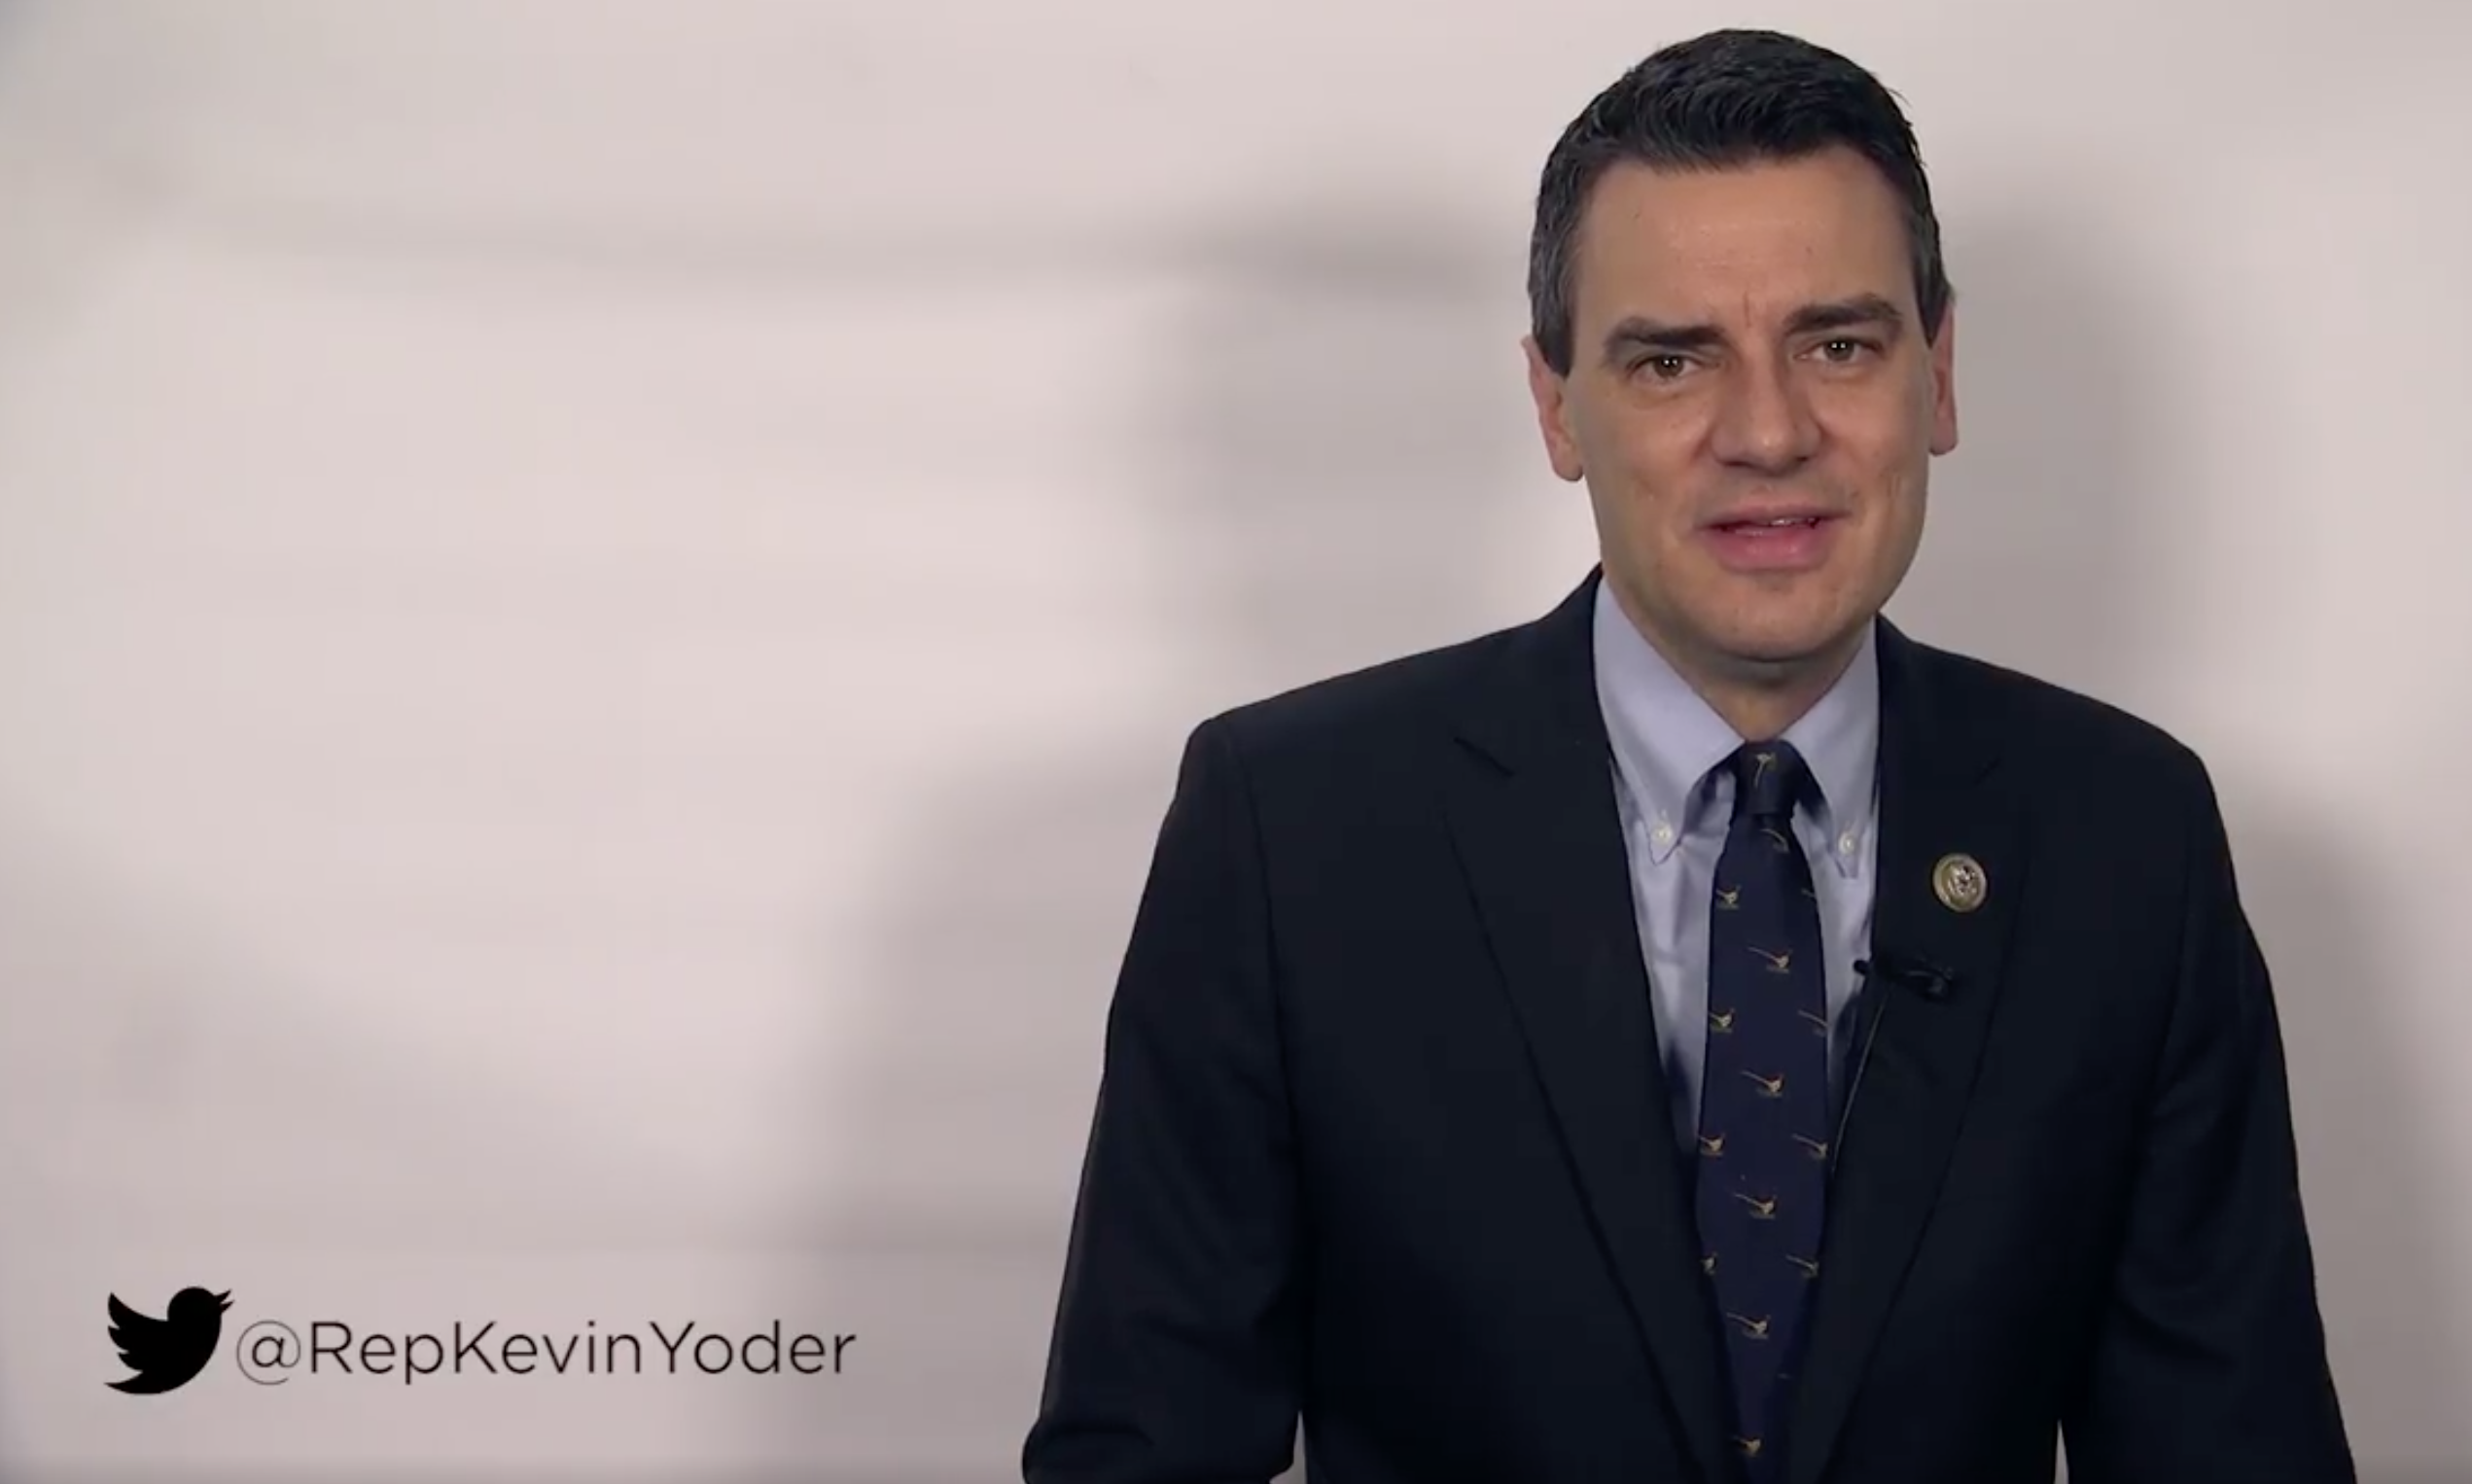 Amazing Kevin Yoder Twitter